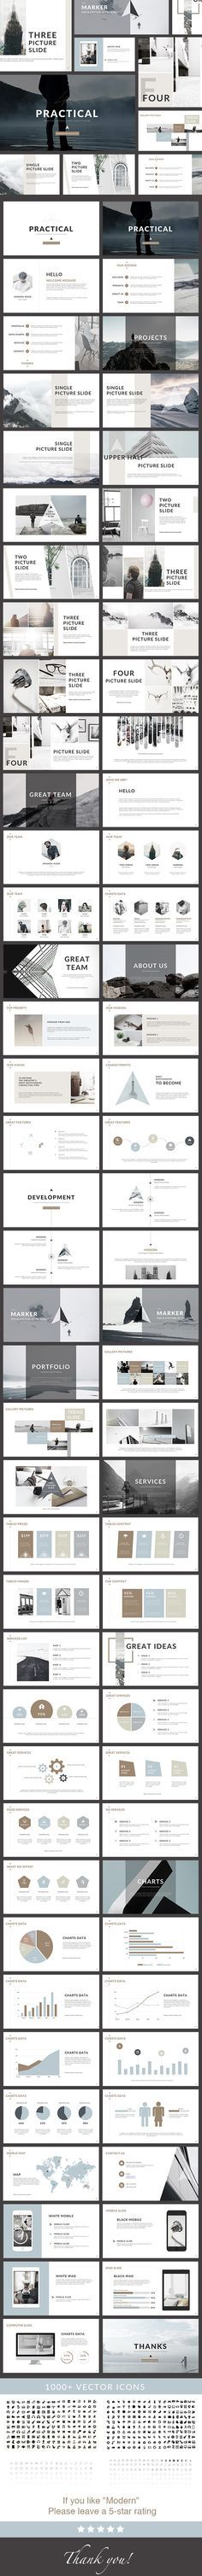 Practical - Clean PowerPoint Presentation Template. Download here: https://graphicriver.net/item/practical-clean-powerpoint-presentation/17250559?ref=ksioks